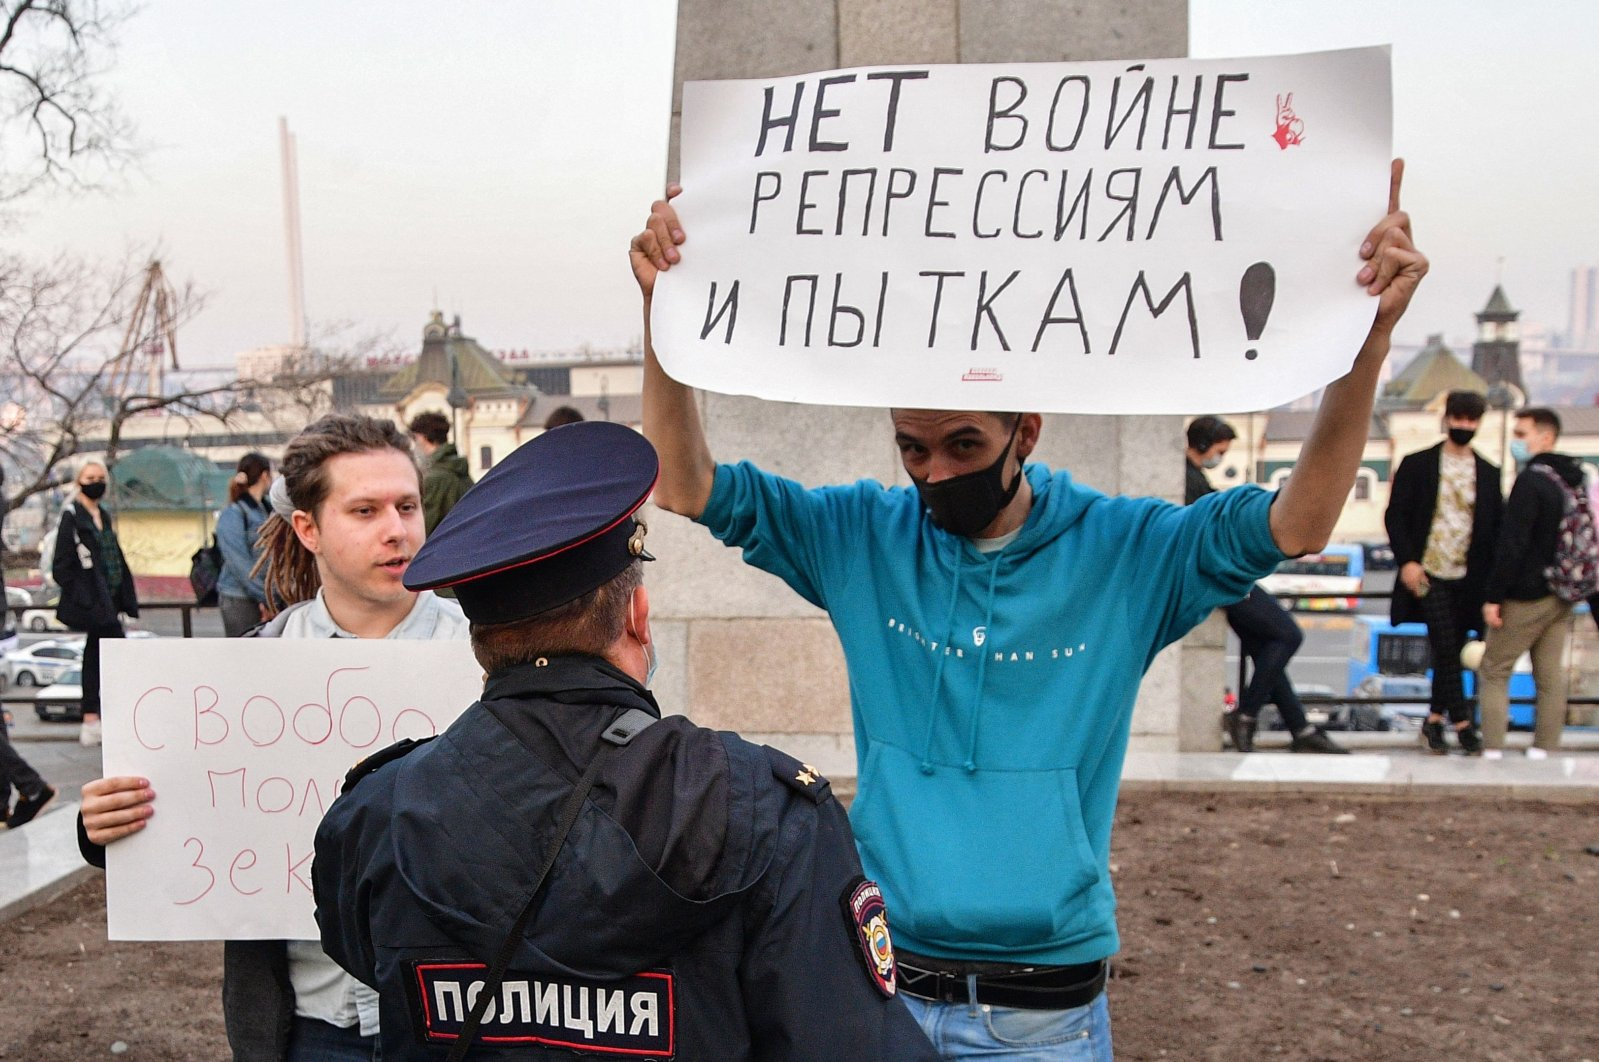 """A Russian police officer speaks with an opposition supporter holding a poster reading """"No war, repressions and tortures!"""" during a rally in support of jailed Kremlin critic Alexei Navalny in Vladivostok, Russia, April 21, 2021. (AFP Photo)"""